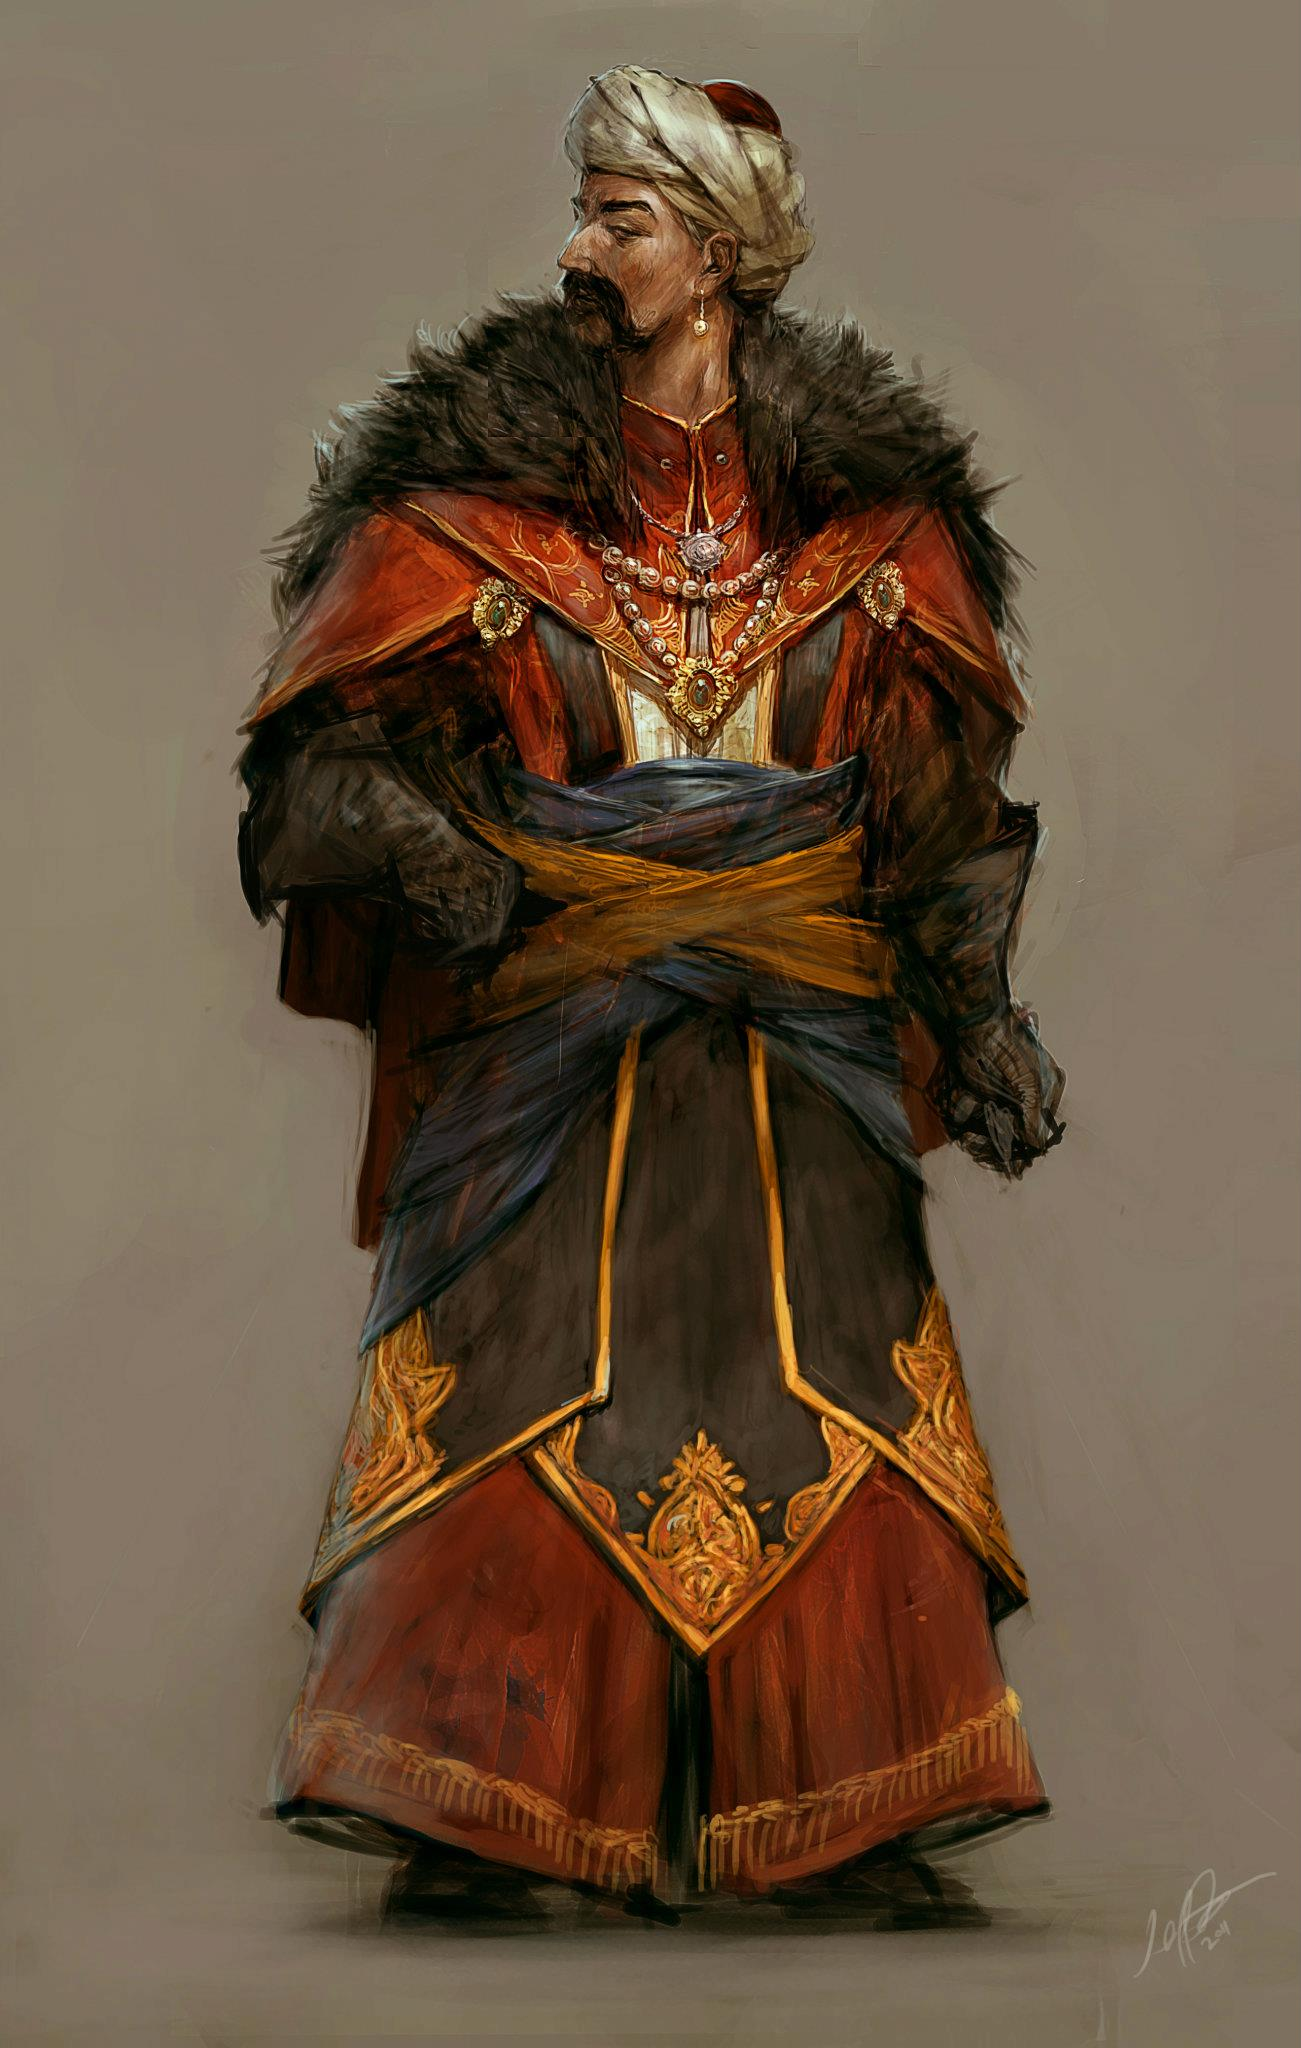 Image acr artwork the assassin 39 s creed wiki assassin 39 s creed assassin 39 s creed - Ottoman empire assassins creed ...